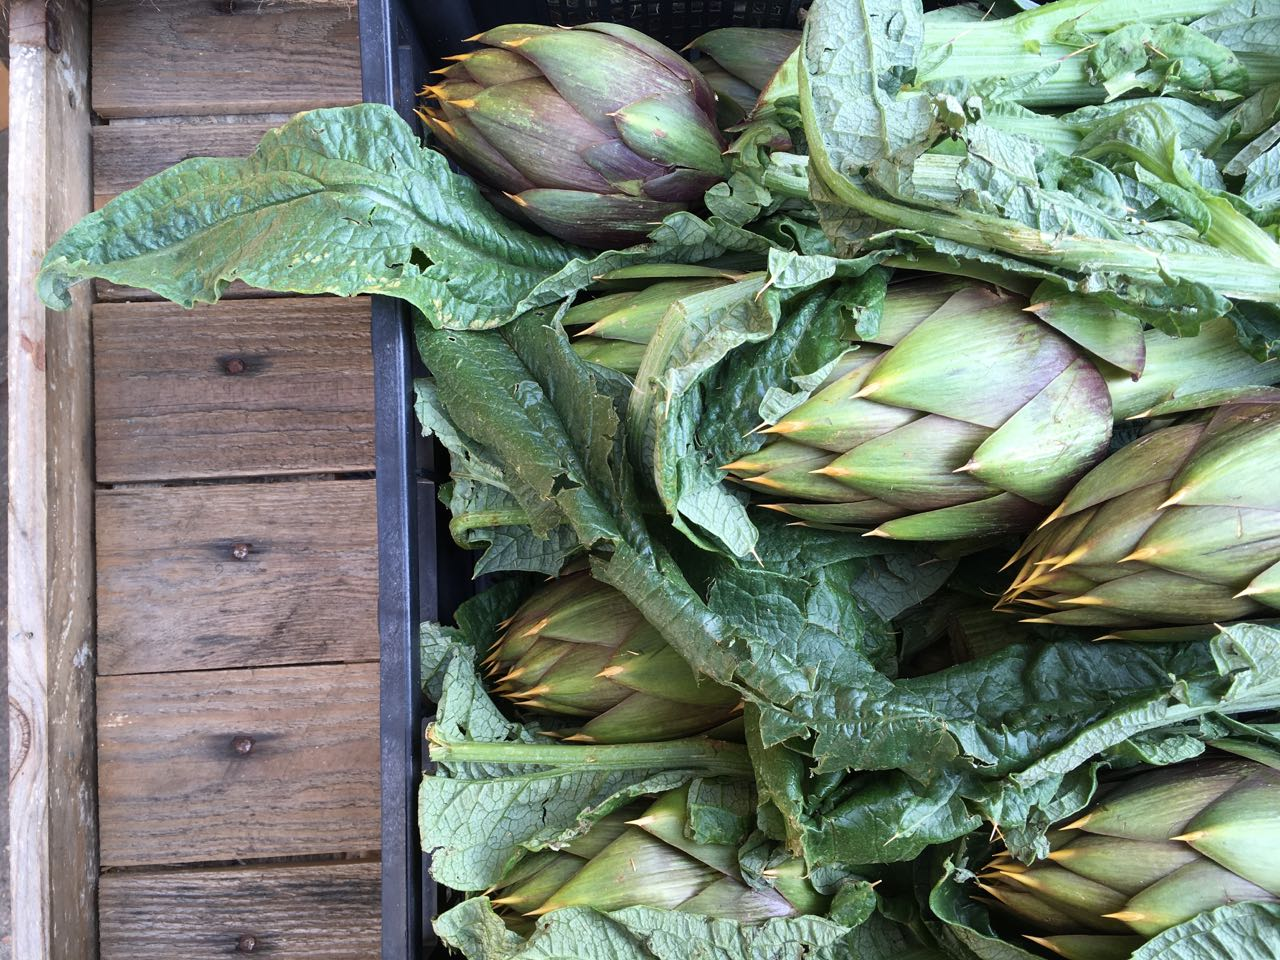 Sardinian Spiky Artichokes    Photo ©Evie Saffron Strands       We are very proud of our  Citrus,  much of it untreated and directly sourced from Sicily. Crates of  Leafy Lemons , juicy  Navel Oranges ,  Tarocco   Oranges ,  Pink Grapefruits  and highly-perfumed  Mandarins  have been delivered in increasing variety since late December. Last week  Kumquats  arrived and we hope for more red-fleshed  Moro   Oranges .      At the beginning of March here at Puntarelle & Co we have:     British  Brassicas  including  Savoy Cabbage , green and purple hued  January King , blistered-leaved  Black Cabbage/Cavolo Nero ,  Kale ,  Brussels Sprouts  and  Brussels Tops , and  Purple Sprouting Broccoli . We have  Kohlrabi  too.  For Roots, which store well, there are  Jerusalem Artichokes ,  Beetroot ,  Turnips ,  Swede,   Celeriac ,  Potatoes  and  Carrots .  Leeks , which are happy in cold ground, are still coming in from the fields.   Yorkshire Forced Rhubarb  is reaching its peak. Its stalks are a little thicker and more deeply coloured now, and are tasting at their best.   Untreated Sicilian Citrus  in the form of  Leafy     Lemons , juicy  Tarocco   Oranges ,  Pink Grapefruits , sweet  Mandarins Nova  and common Mandarins.   We have a small number of highly-coloured  Tarocco Fire Oranges  this week. And, via the Milan market, we have  Bergamots  and  Cedro .  There may be snow on the ground but this week sees the first  Broad Beans ,  Fresh Peas ,  Wild Asparagus , cultivated  Purple Asparagus  from warmer climes. We have  Minestra Cabbage  and  Broccolo di Bassano  from Italy.  There is vitamin and mineral packed Italian  Spinach  and  Chard  and colourful bitter-leaved heads of  Radicchio . There's  Puntarelle Chicory  and  Cime di Rapa  too.  Crunchy, juicy  Agretti/Monk's Beard  continues, an excellent accompaniment to fish or simply blanched and tossed in anchovy butter.   Spiky Sardinian Artichokes  and globes of  Romaneschi Artichokes  are still with us and, this week,